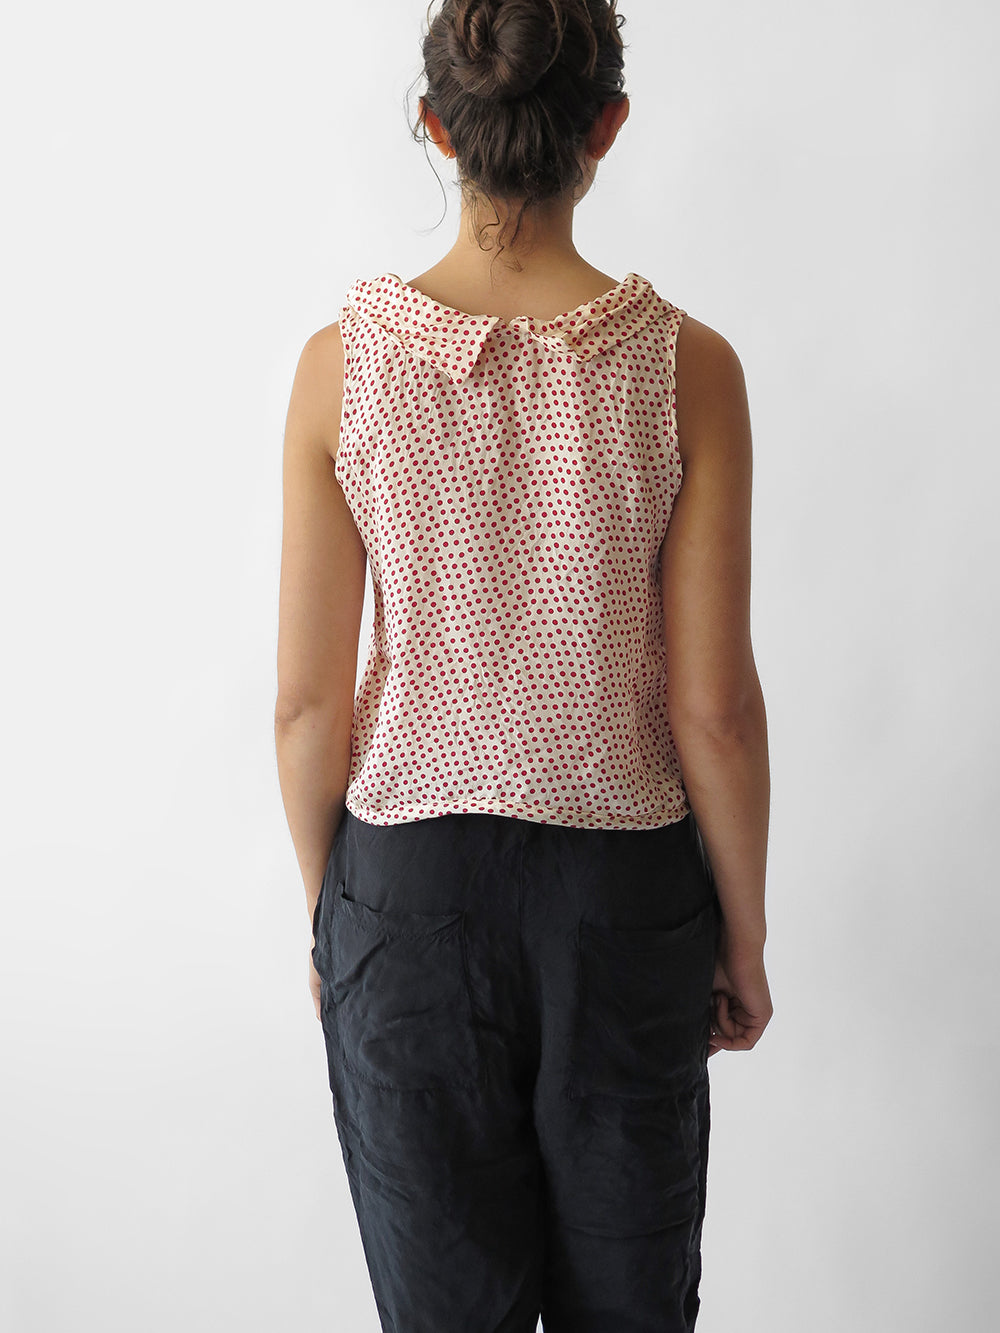 hazel brown collared blouse in all dots